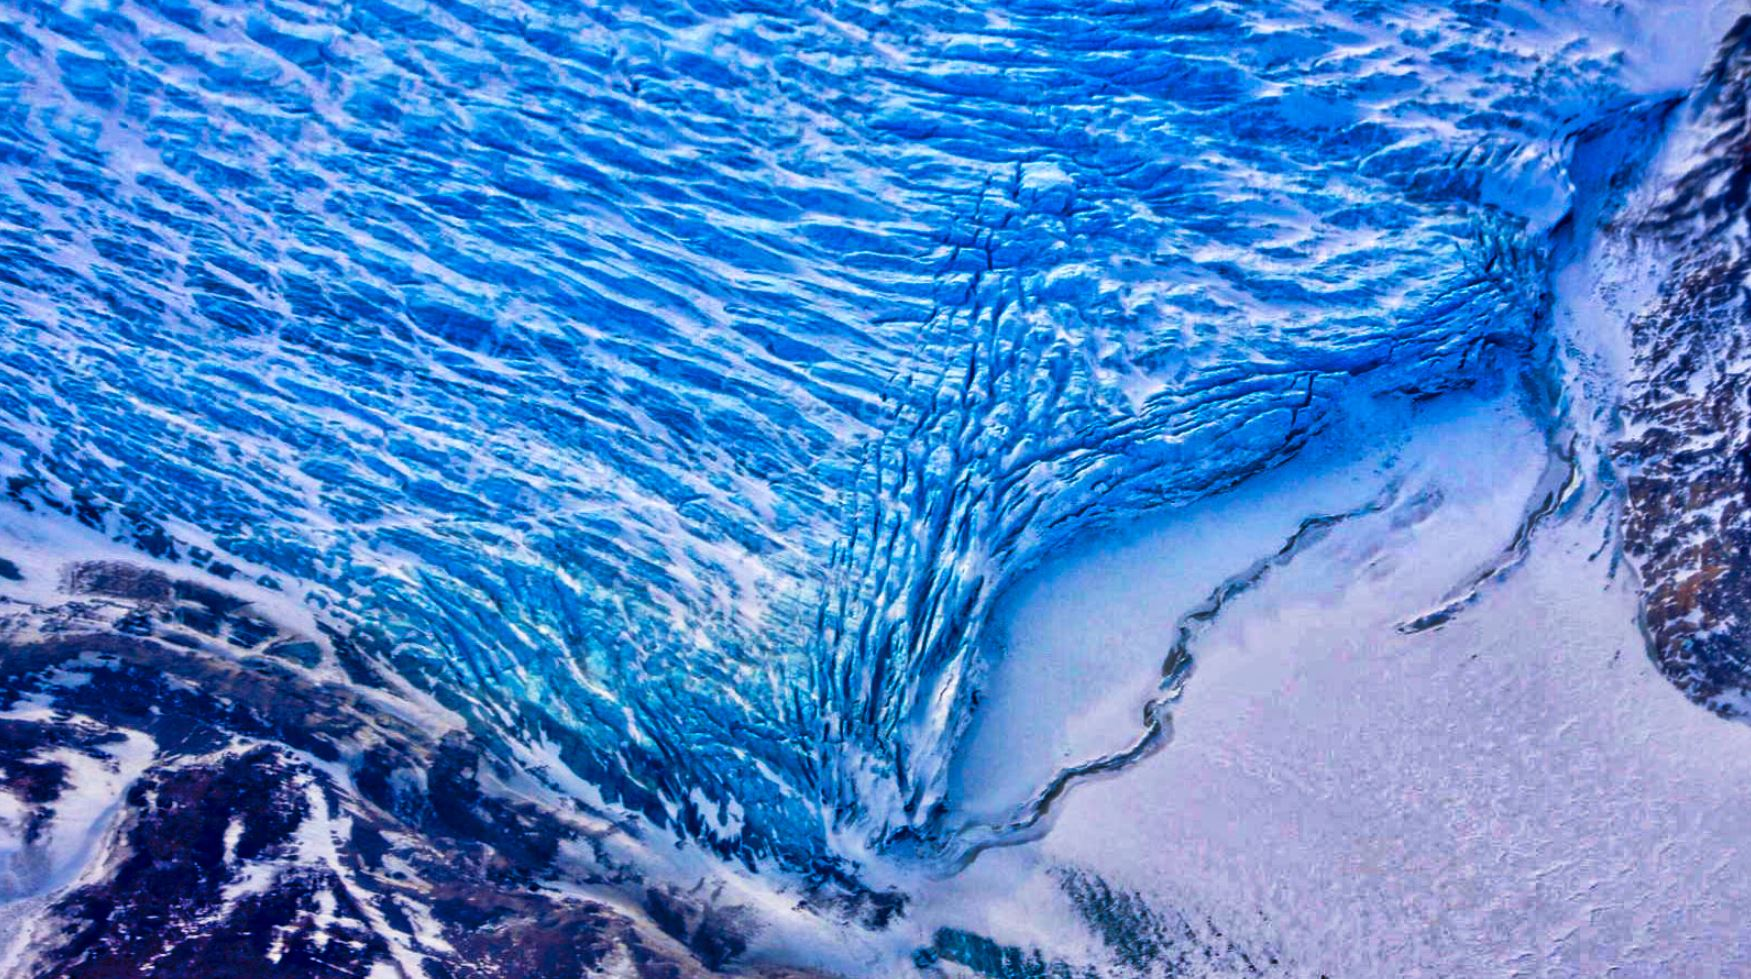 Cracks in the front of a glacier as it reaches the ocean. - Image Credit: NASA/Adam Klein - hdr edit by Universal-Sci